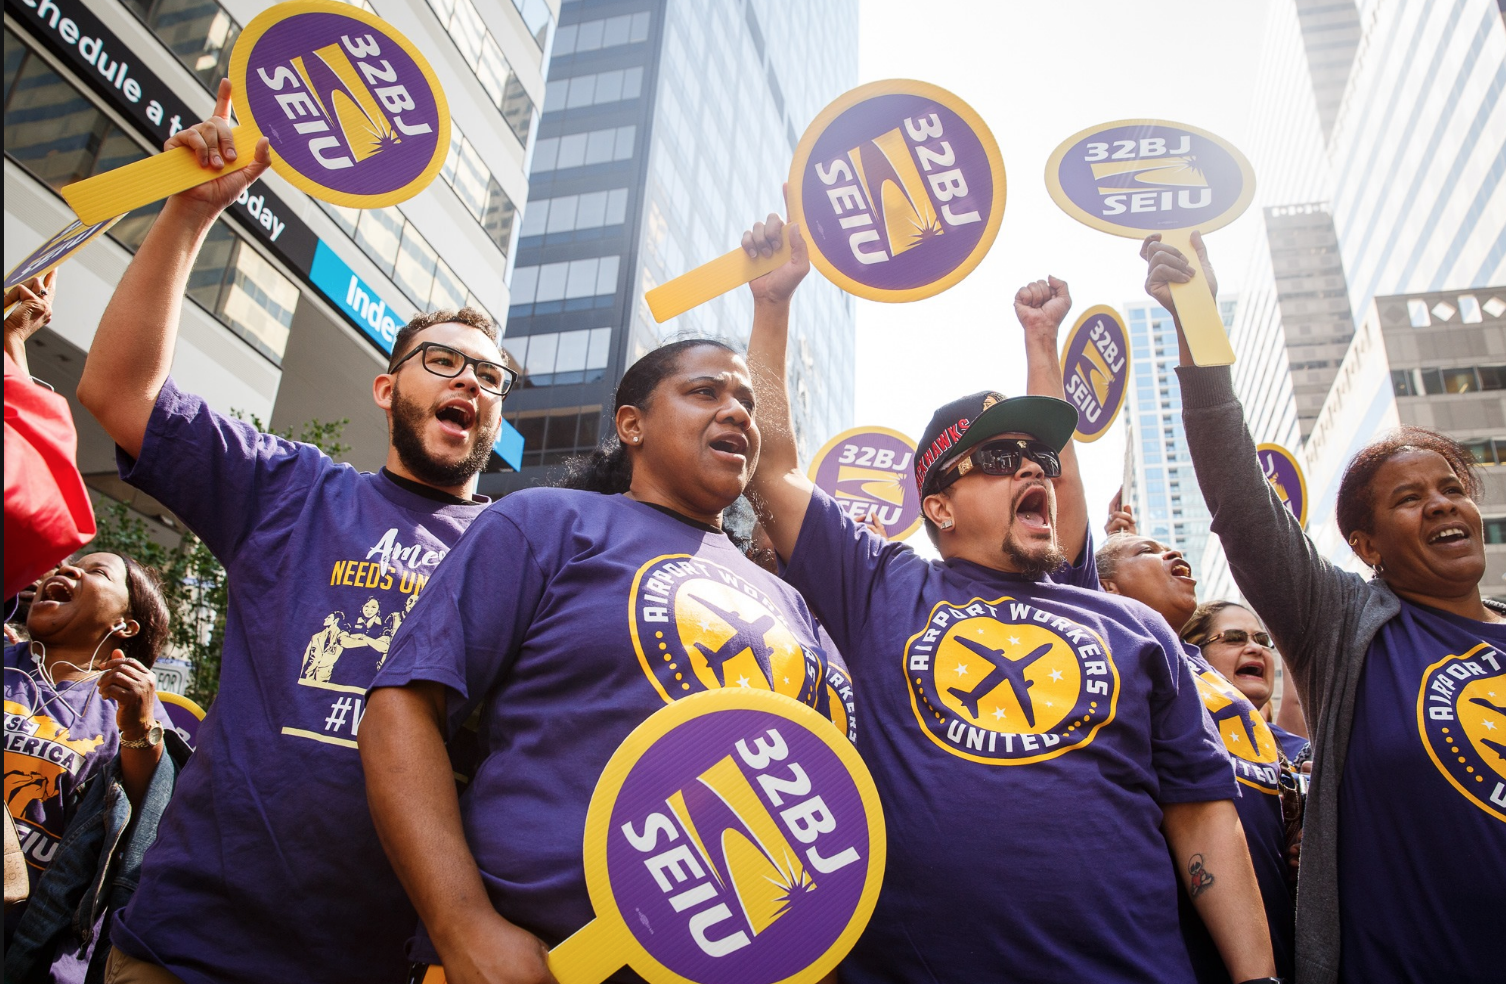 Angry JFK Workers Look to Unionize With 32BJ SEIU